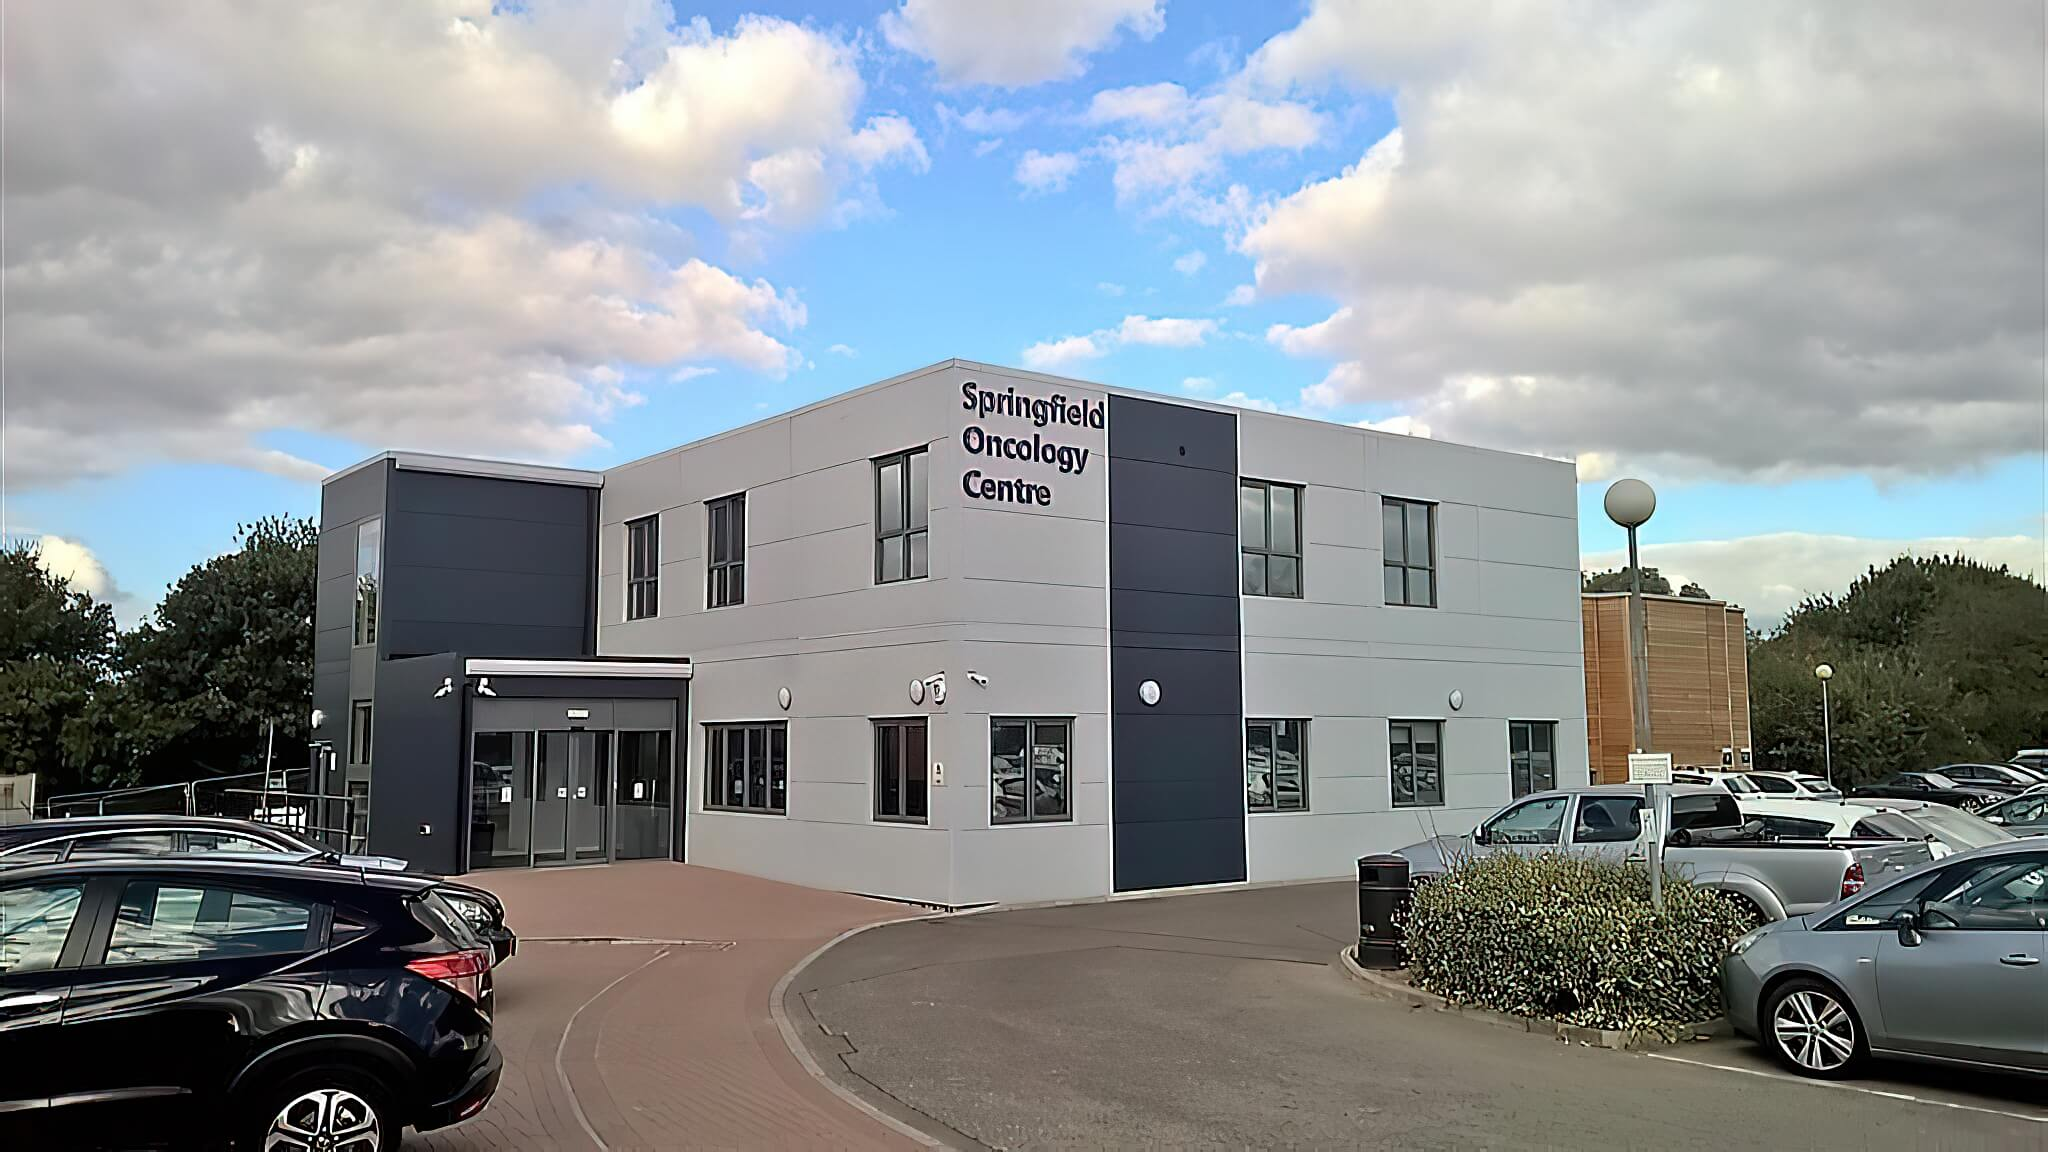 Springfield Hospital Oncology Centre